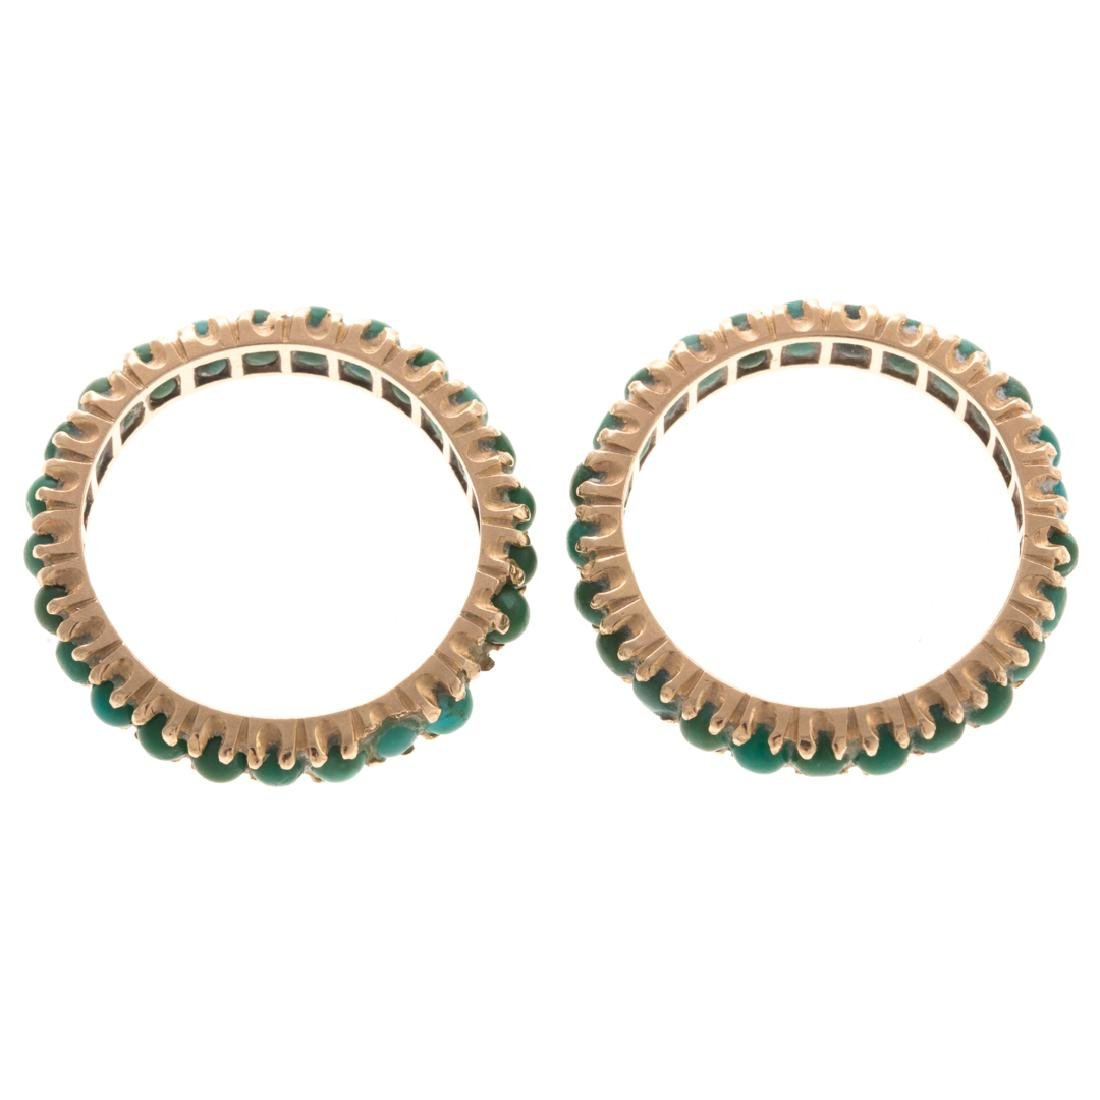 A Pair of 14K Turquoise Guards Rings & Gold Bands - 5